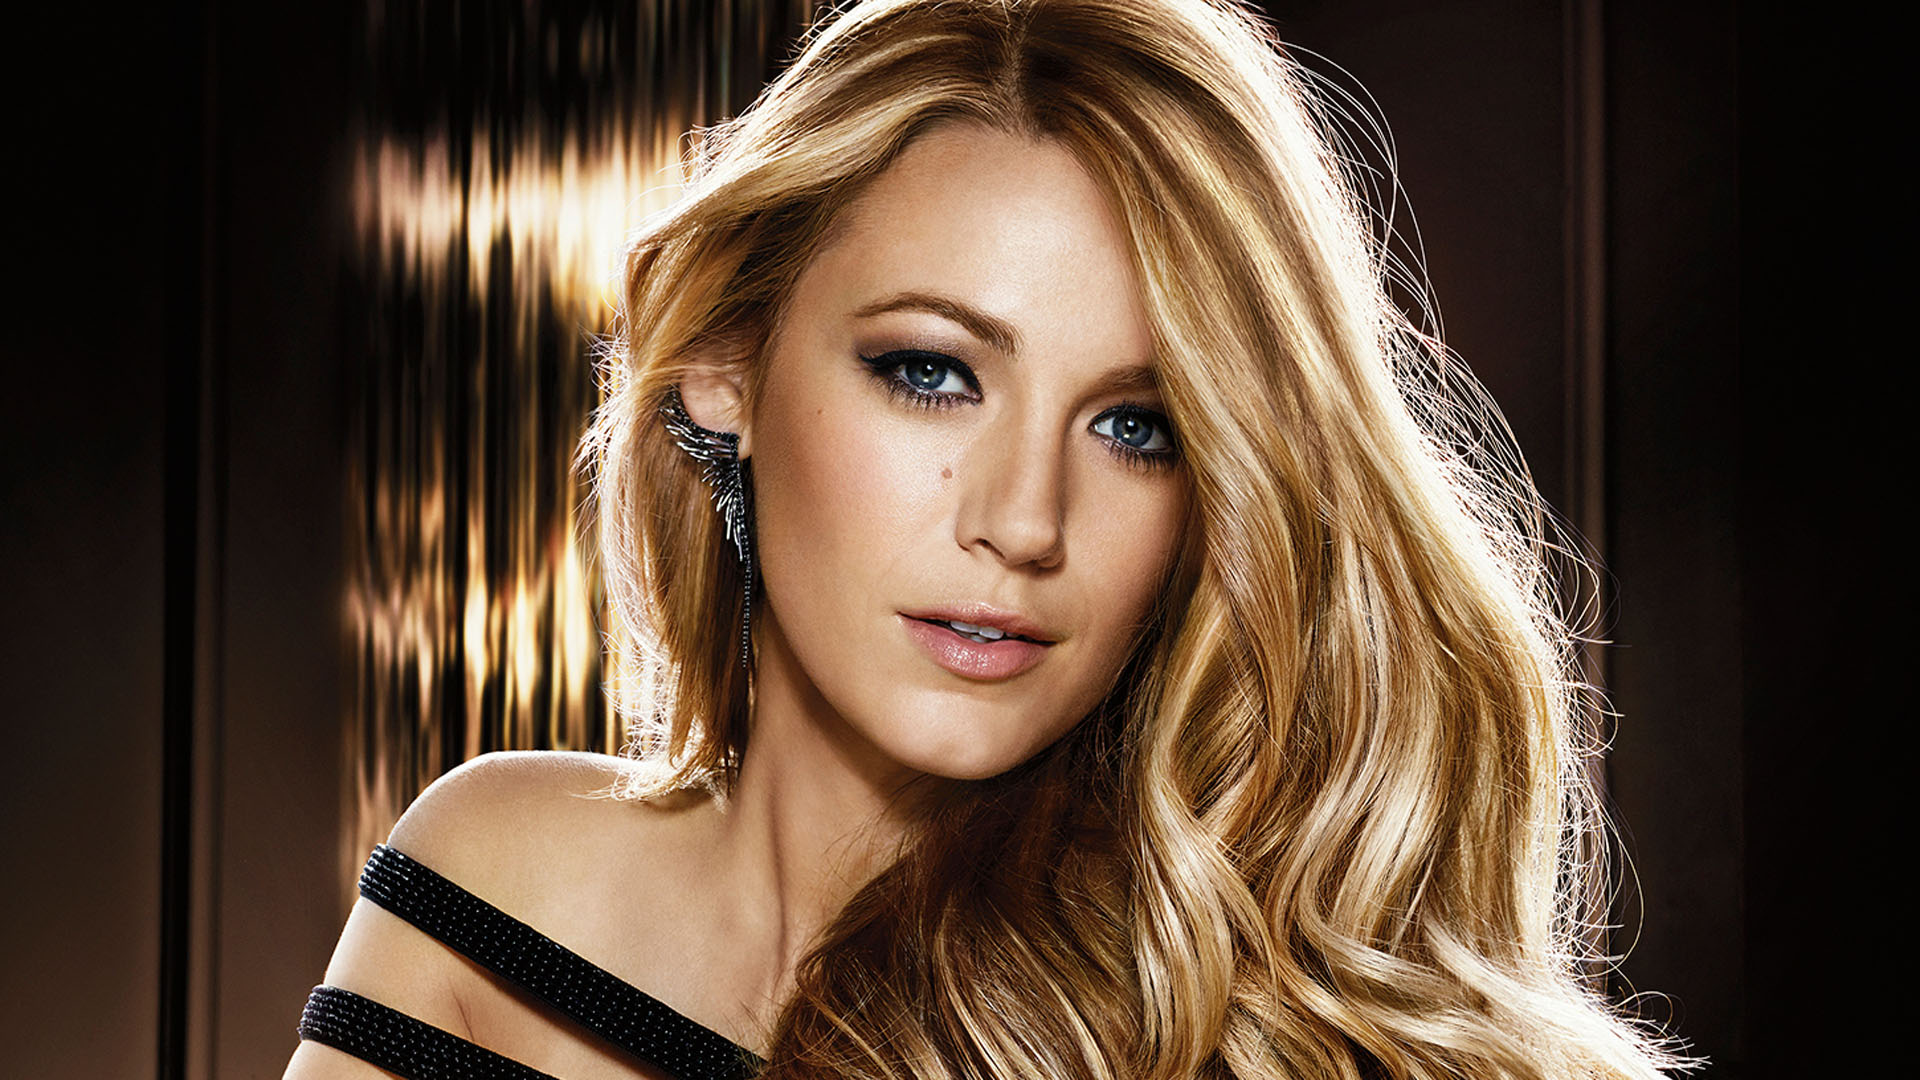 1920x1080 - Blake Lively Wallpapers 1